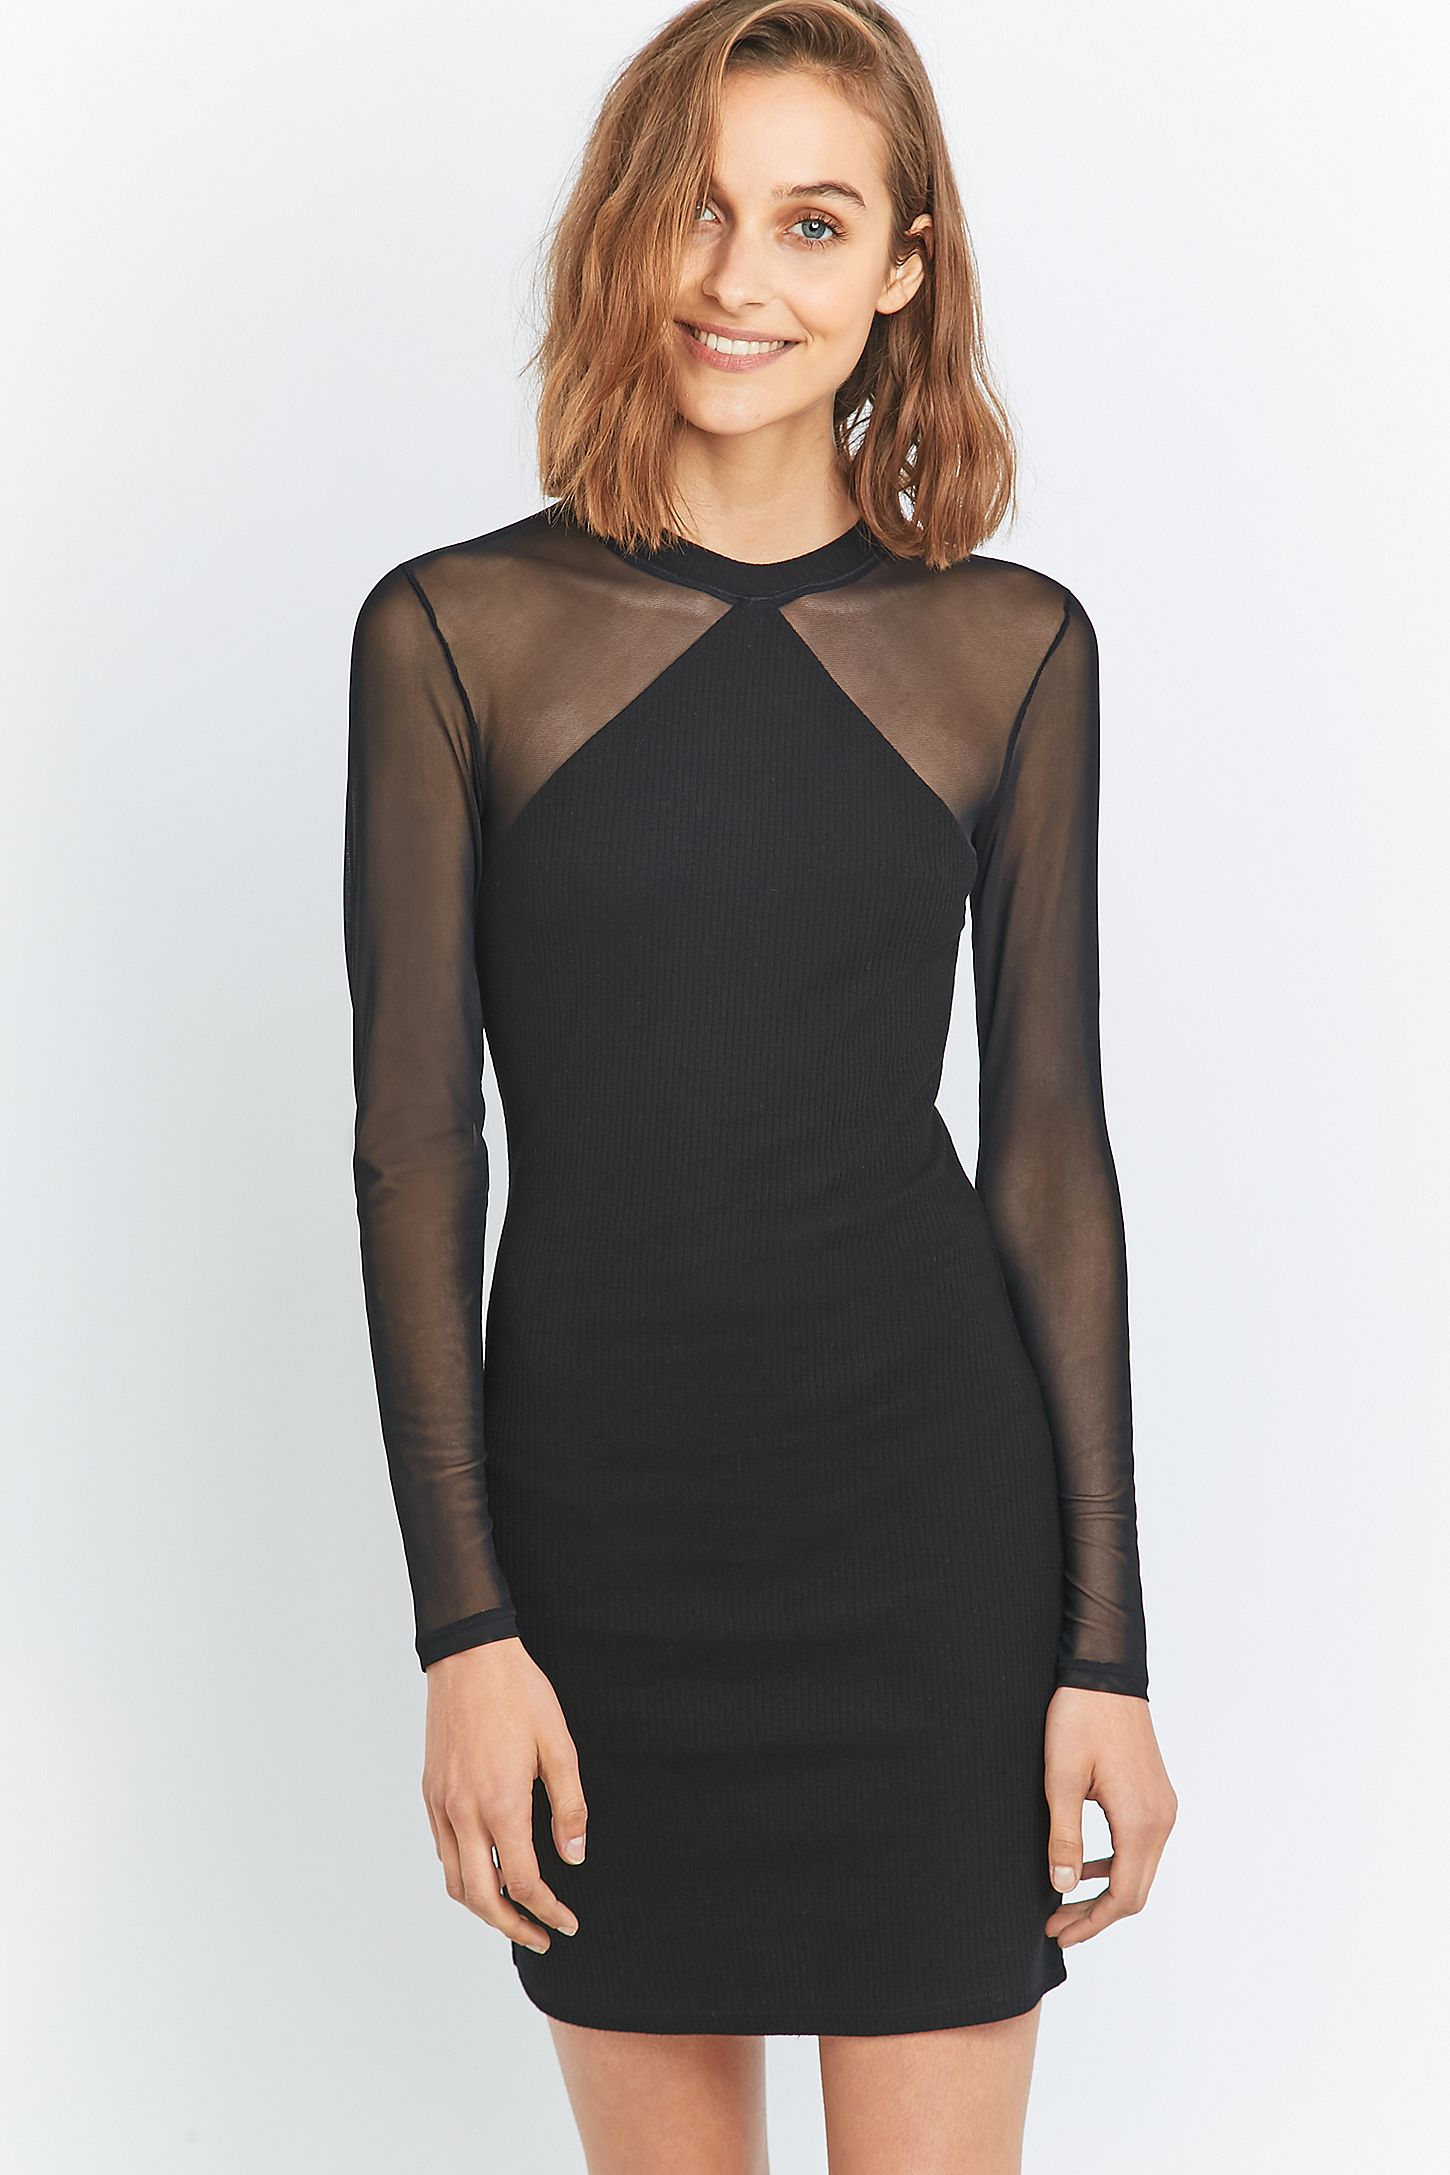 71d2f0218c Sparkle   Fade Black Mesh and Jersey Bodycon Dress